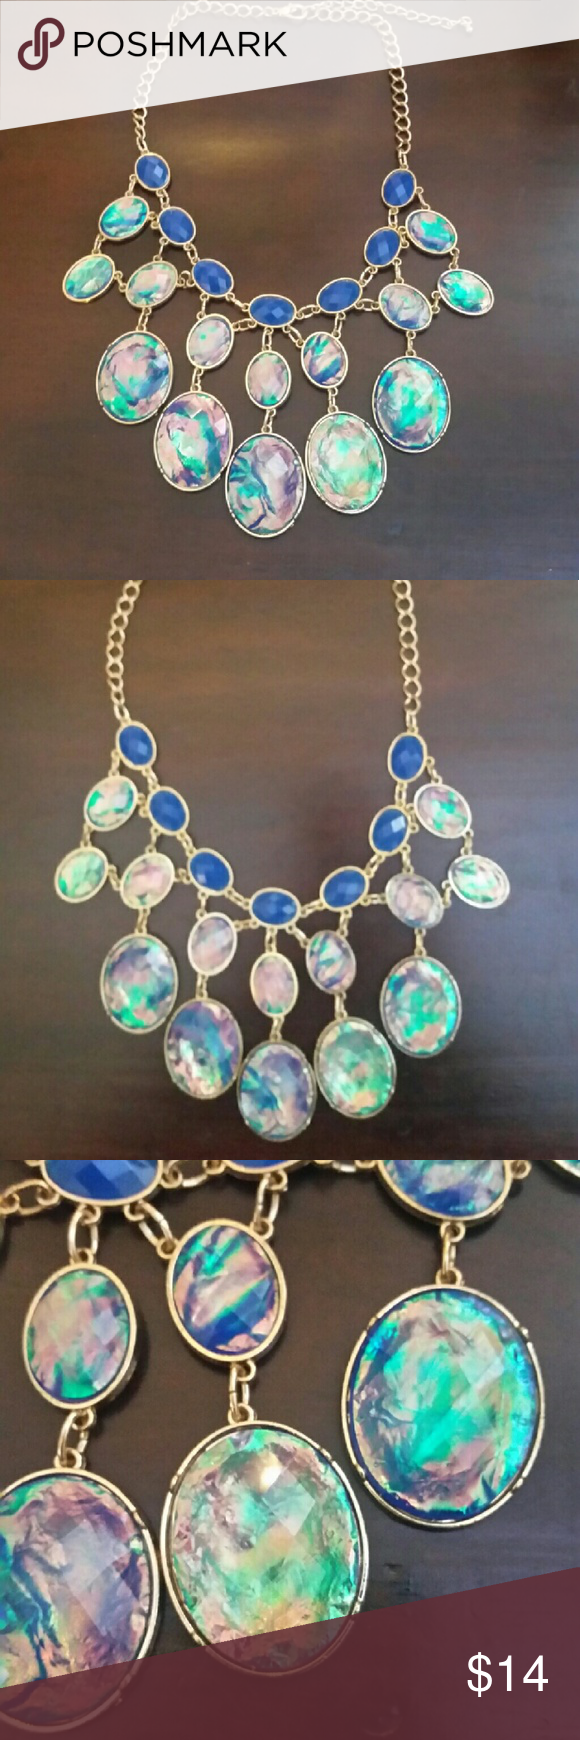 Statement necklace Super cute opalescent purple & gold statement necklace! Adjustable chain Jewelry Necklaces